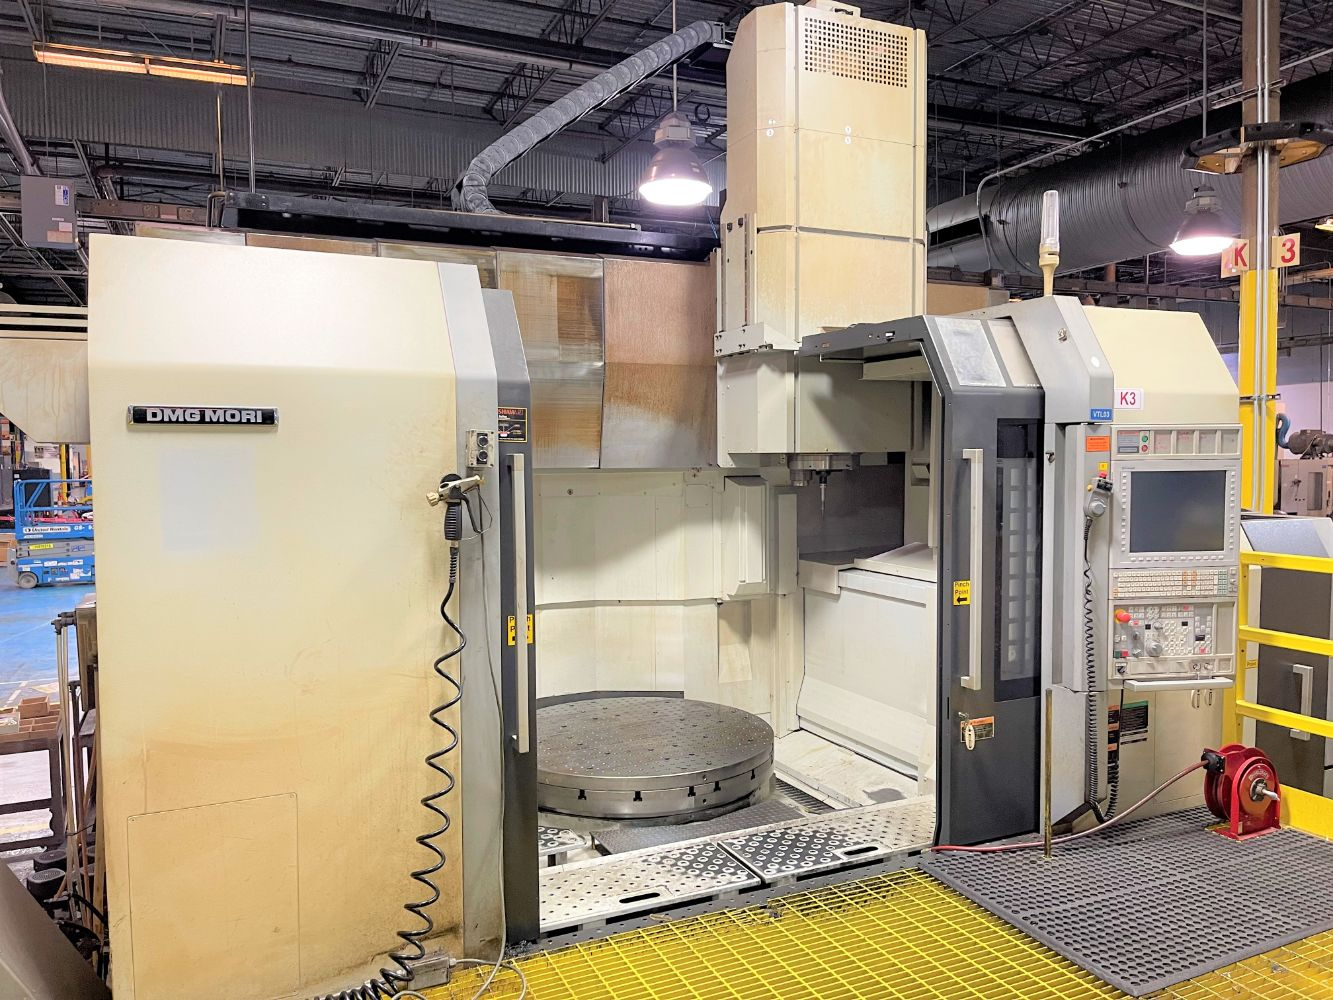 Phase 2 - Surplus to the Continuing Operations of Halliburton DBS Conroe, TX - CNC Machining, Finishing, Welding & Plant Support